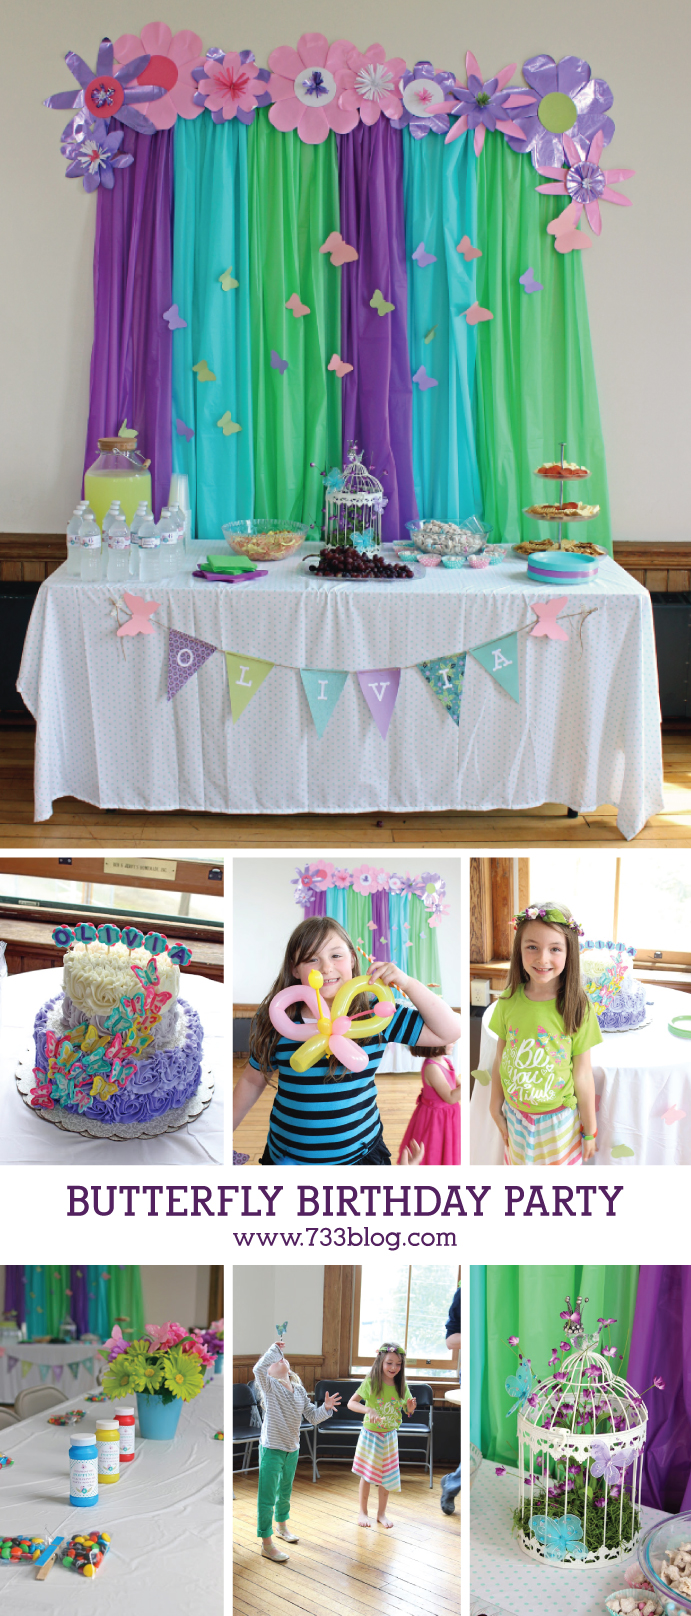 DIY Butterfly Birthday Party